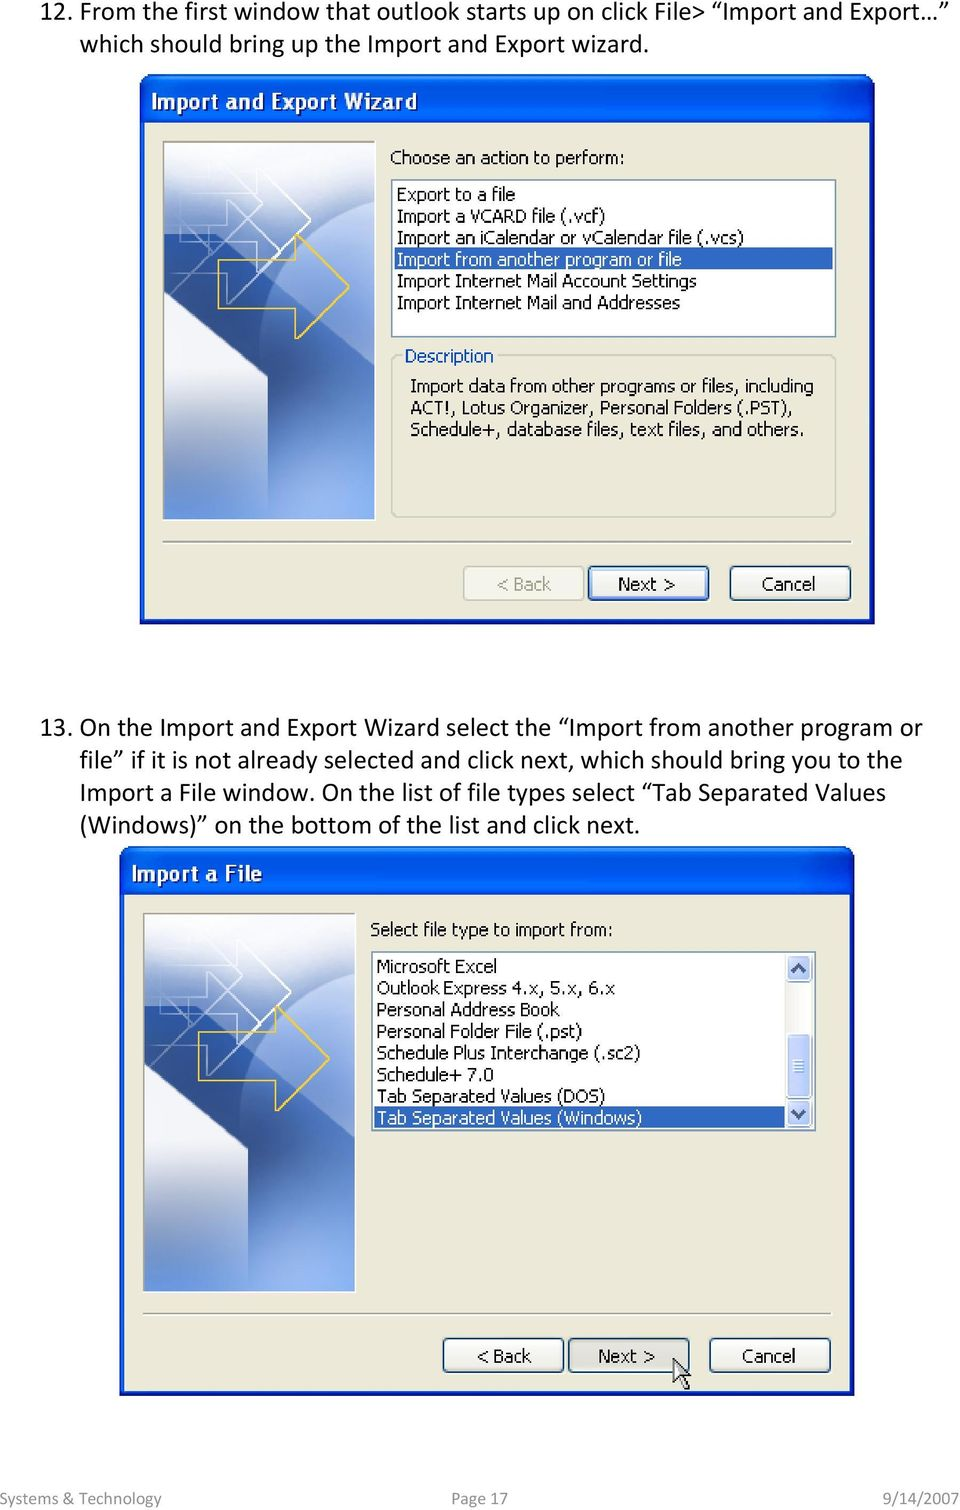 On the Import and Export Wizard select the Import from another program or file if it is not already selected and